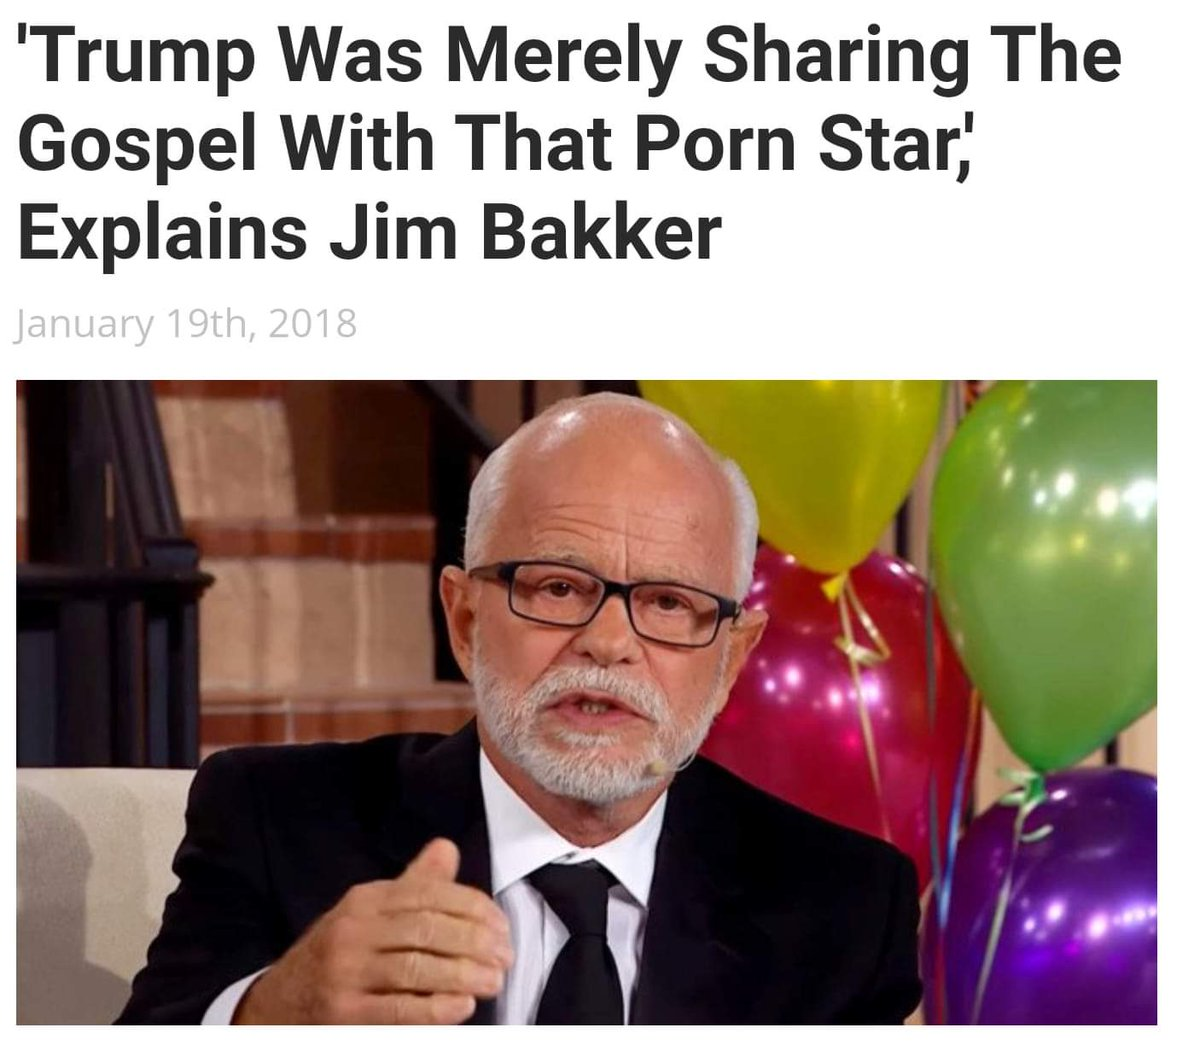 Right...   Trump was merely sharing the gospel with that porn star explains Jim Bakker <br>http://pic.twitter.com/PpfiOTAxvv